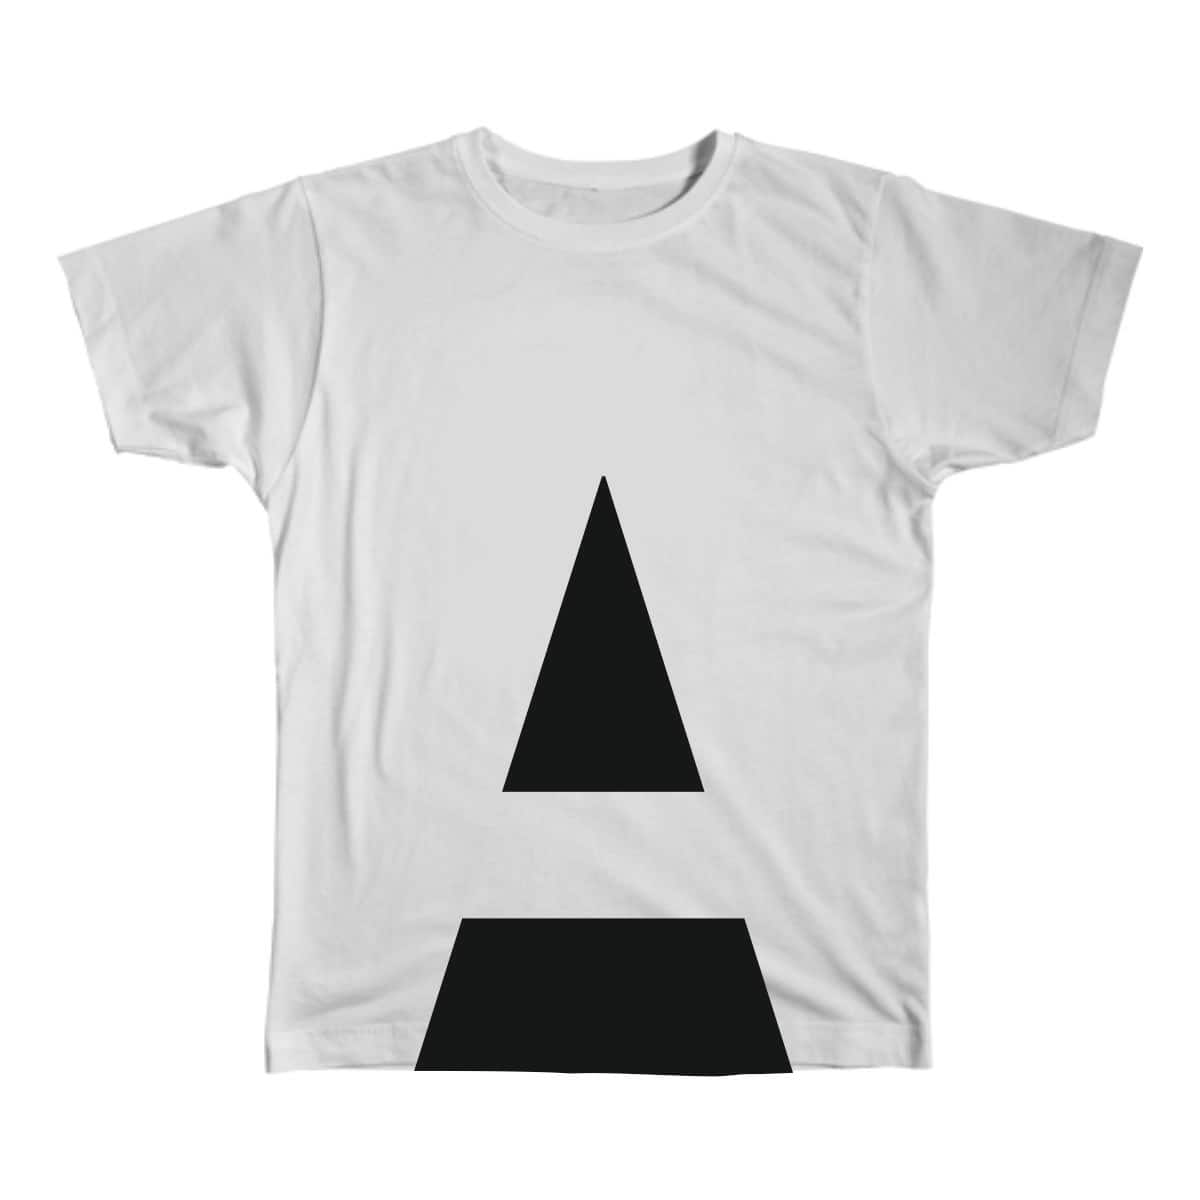 Start with A by leehutch on Threadless